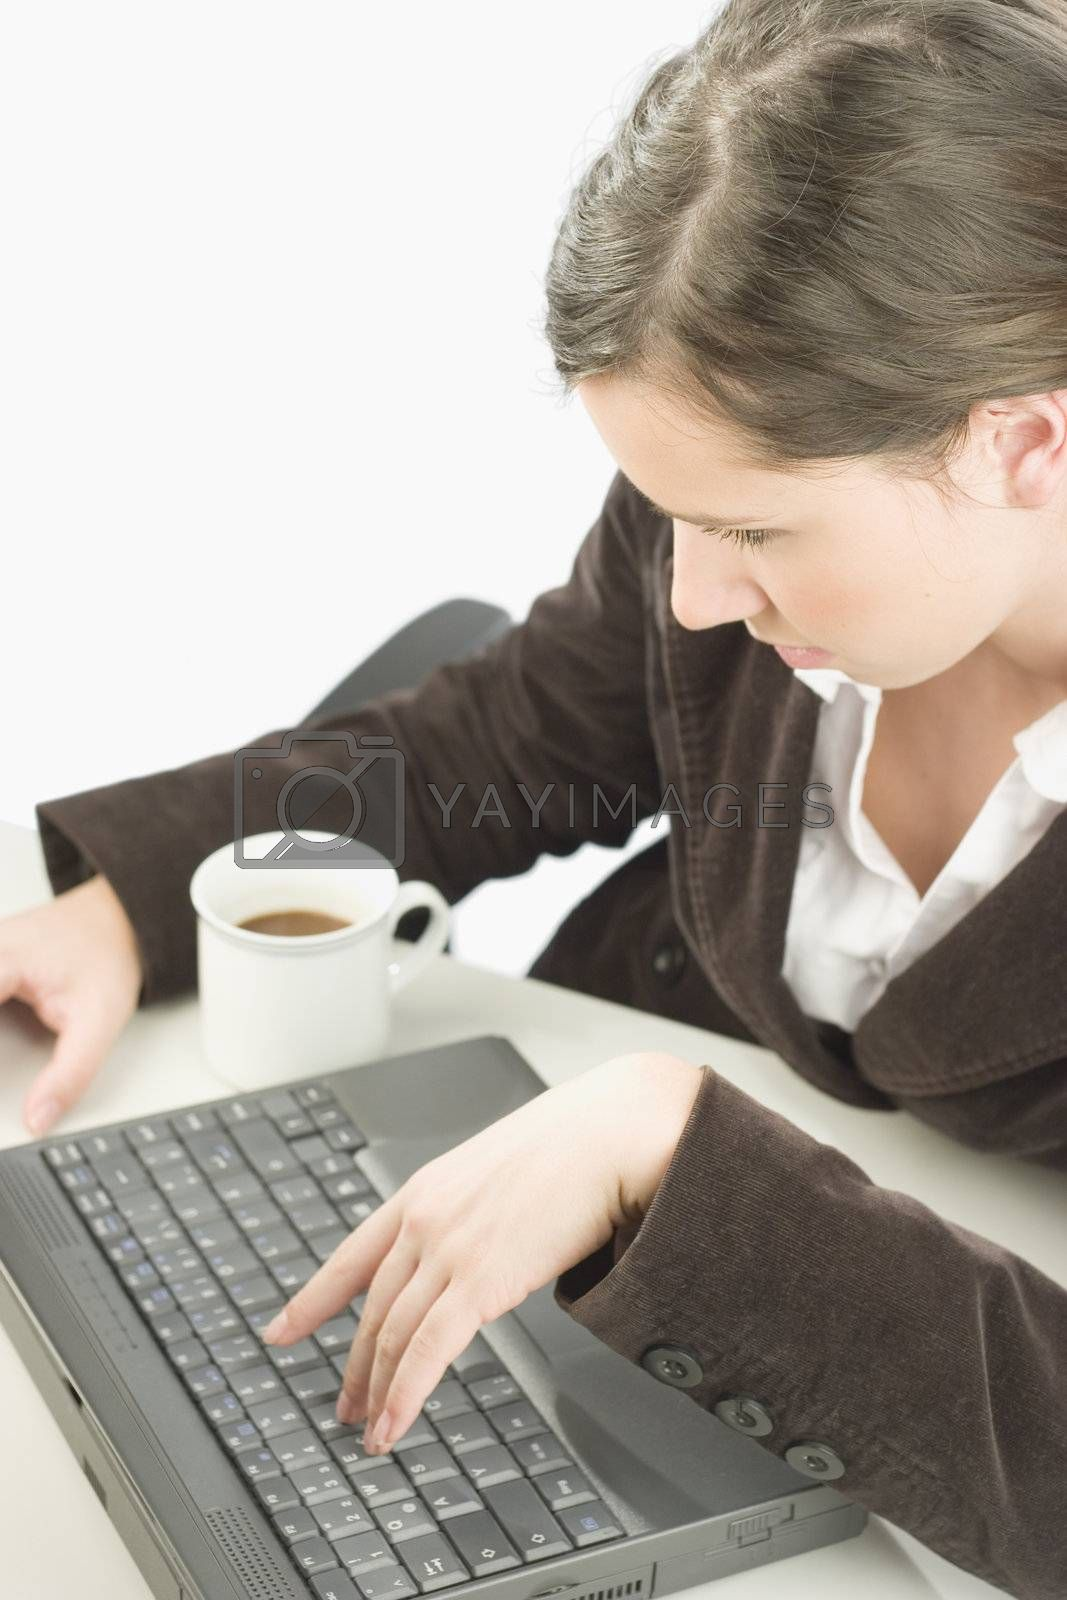 Tired business woman typing on the keyboard of a laptop with a cup of coffee by her side.